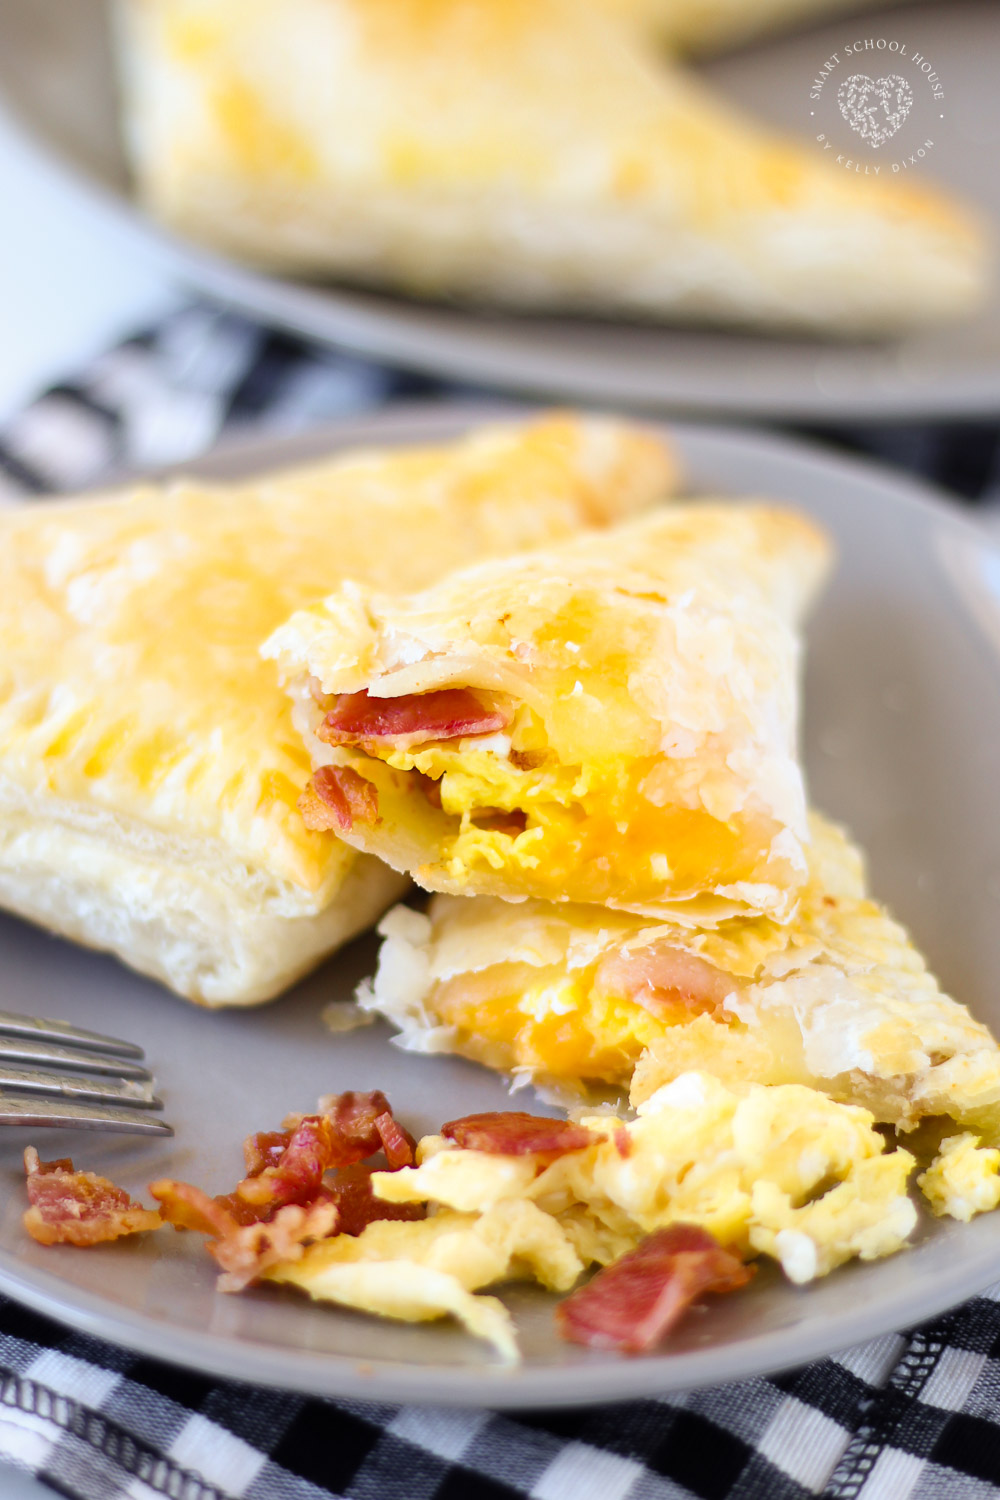 Bacon And Egg Breakfast Pockets Made With Puff Pastry Dough